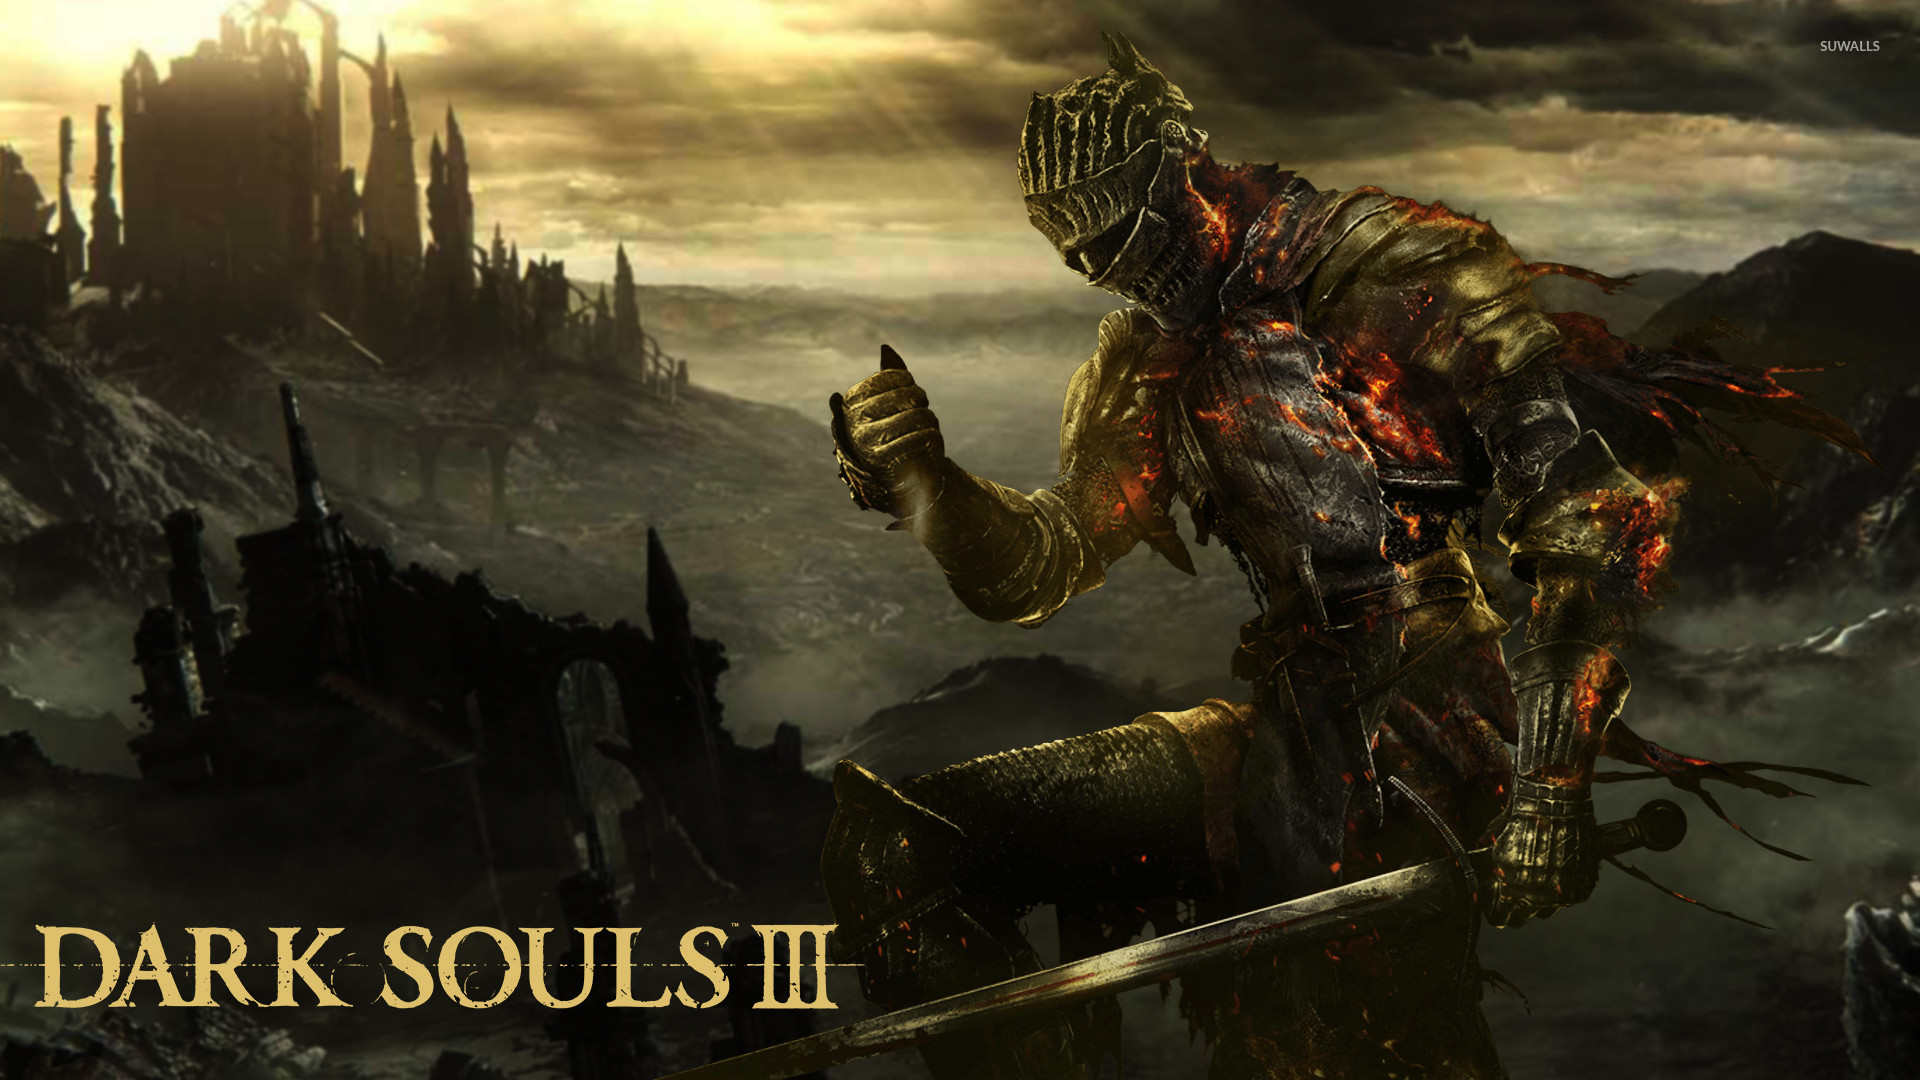 Dark Souls Wallpaper (69+ Images